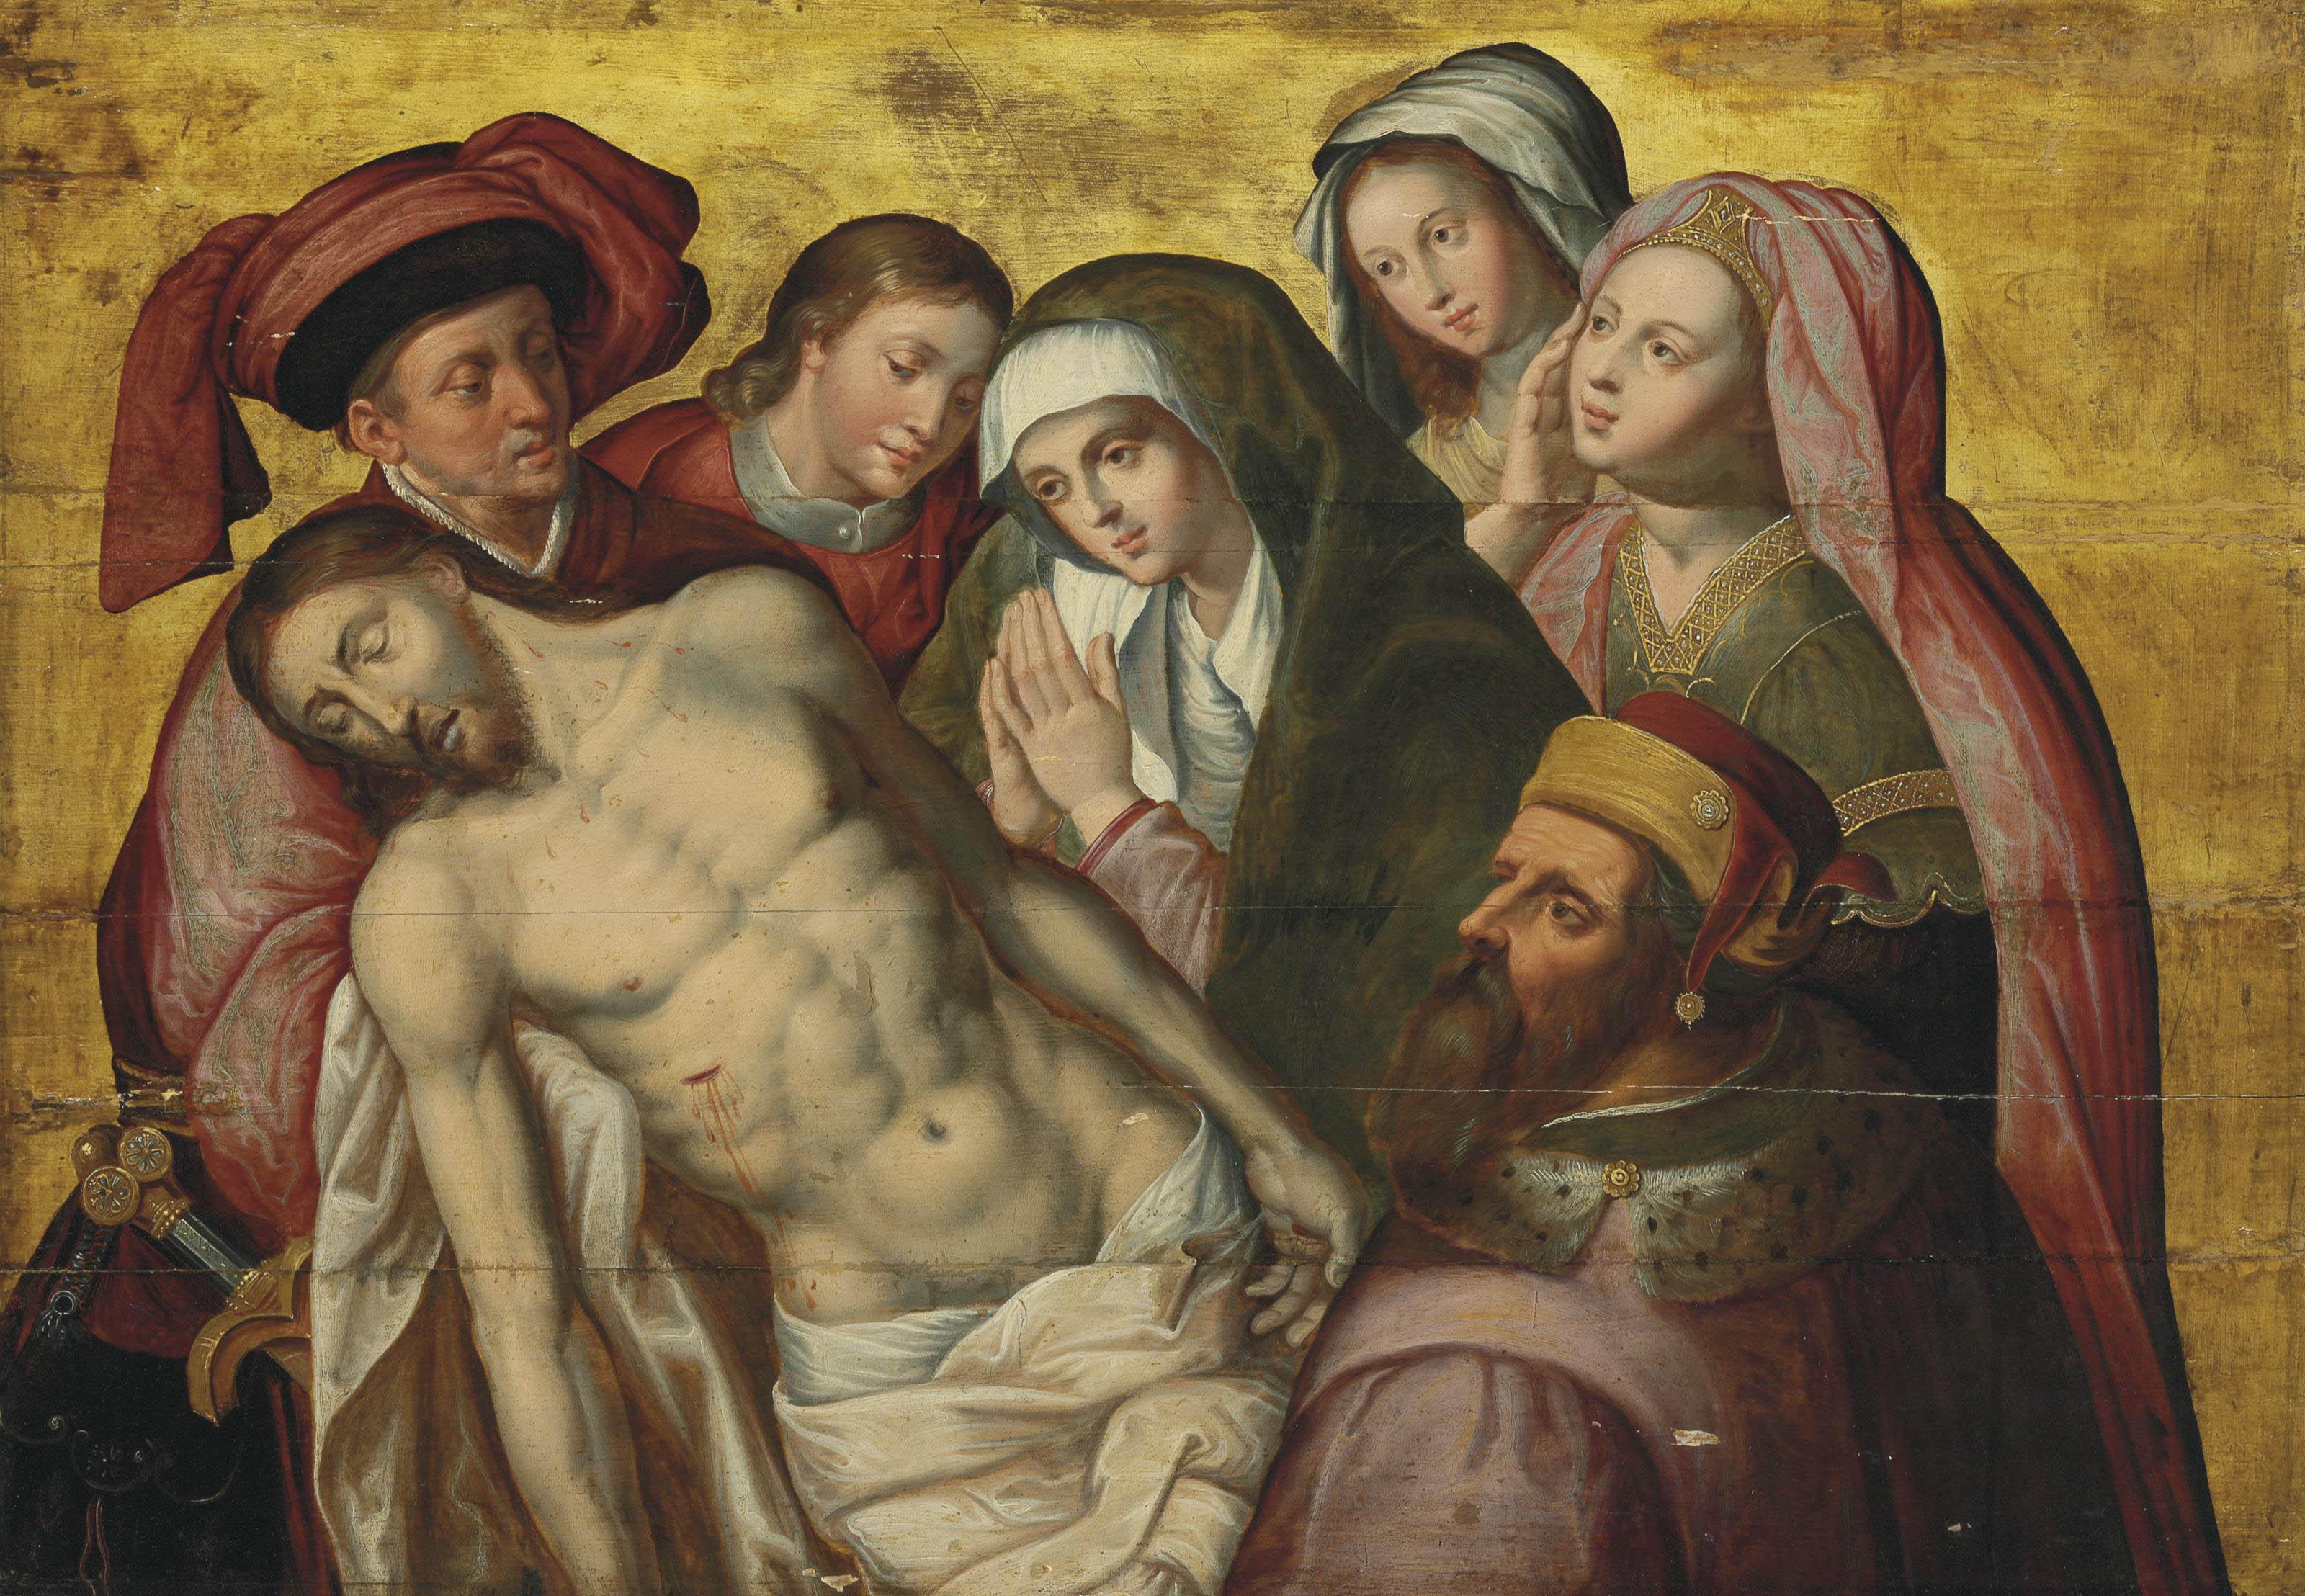 The Lamentation with Mary Magdalene, Saint John the Evangelist and donors